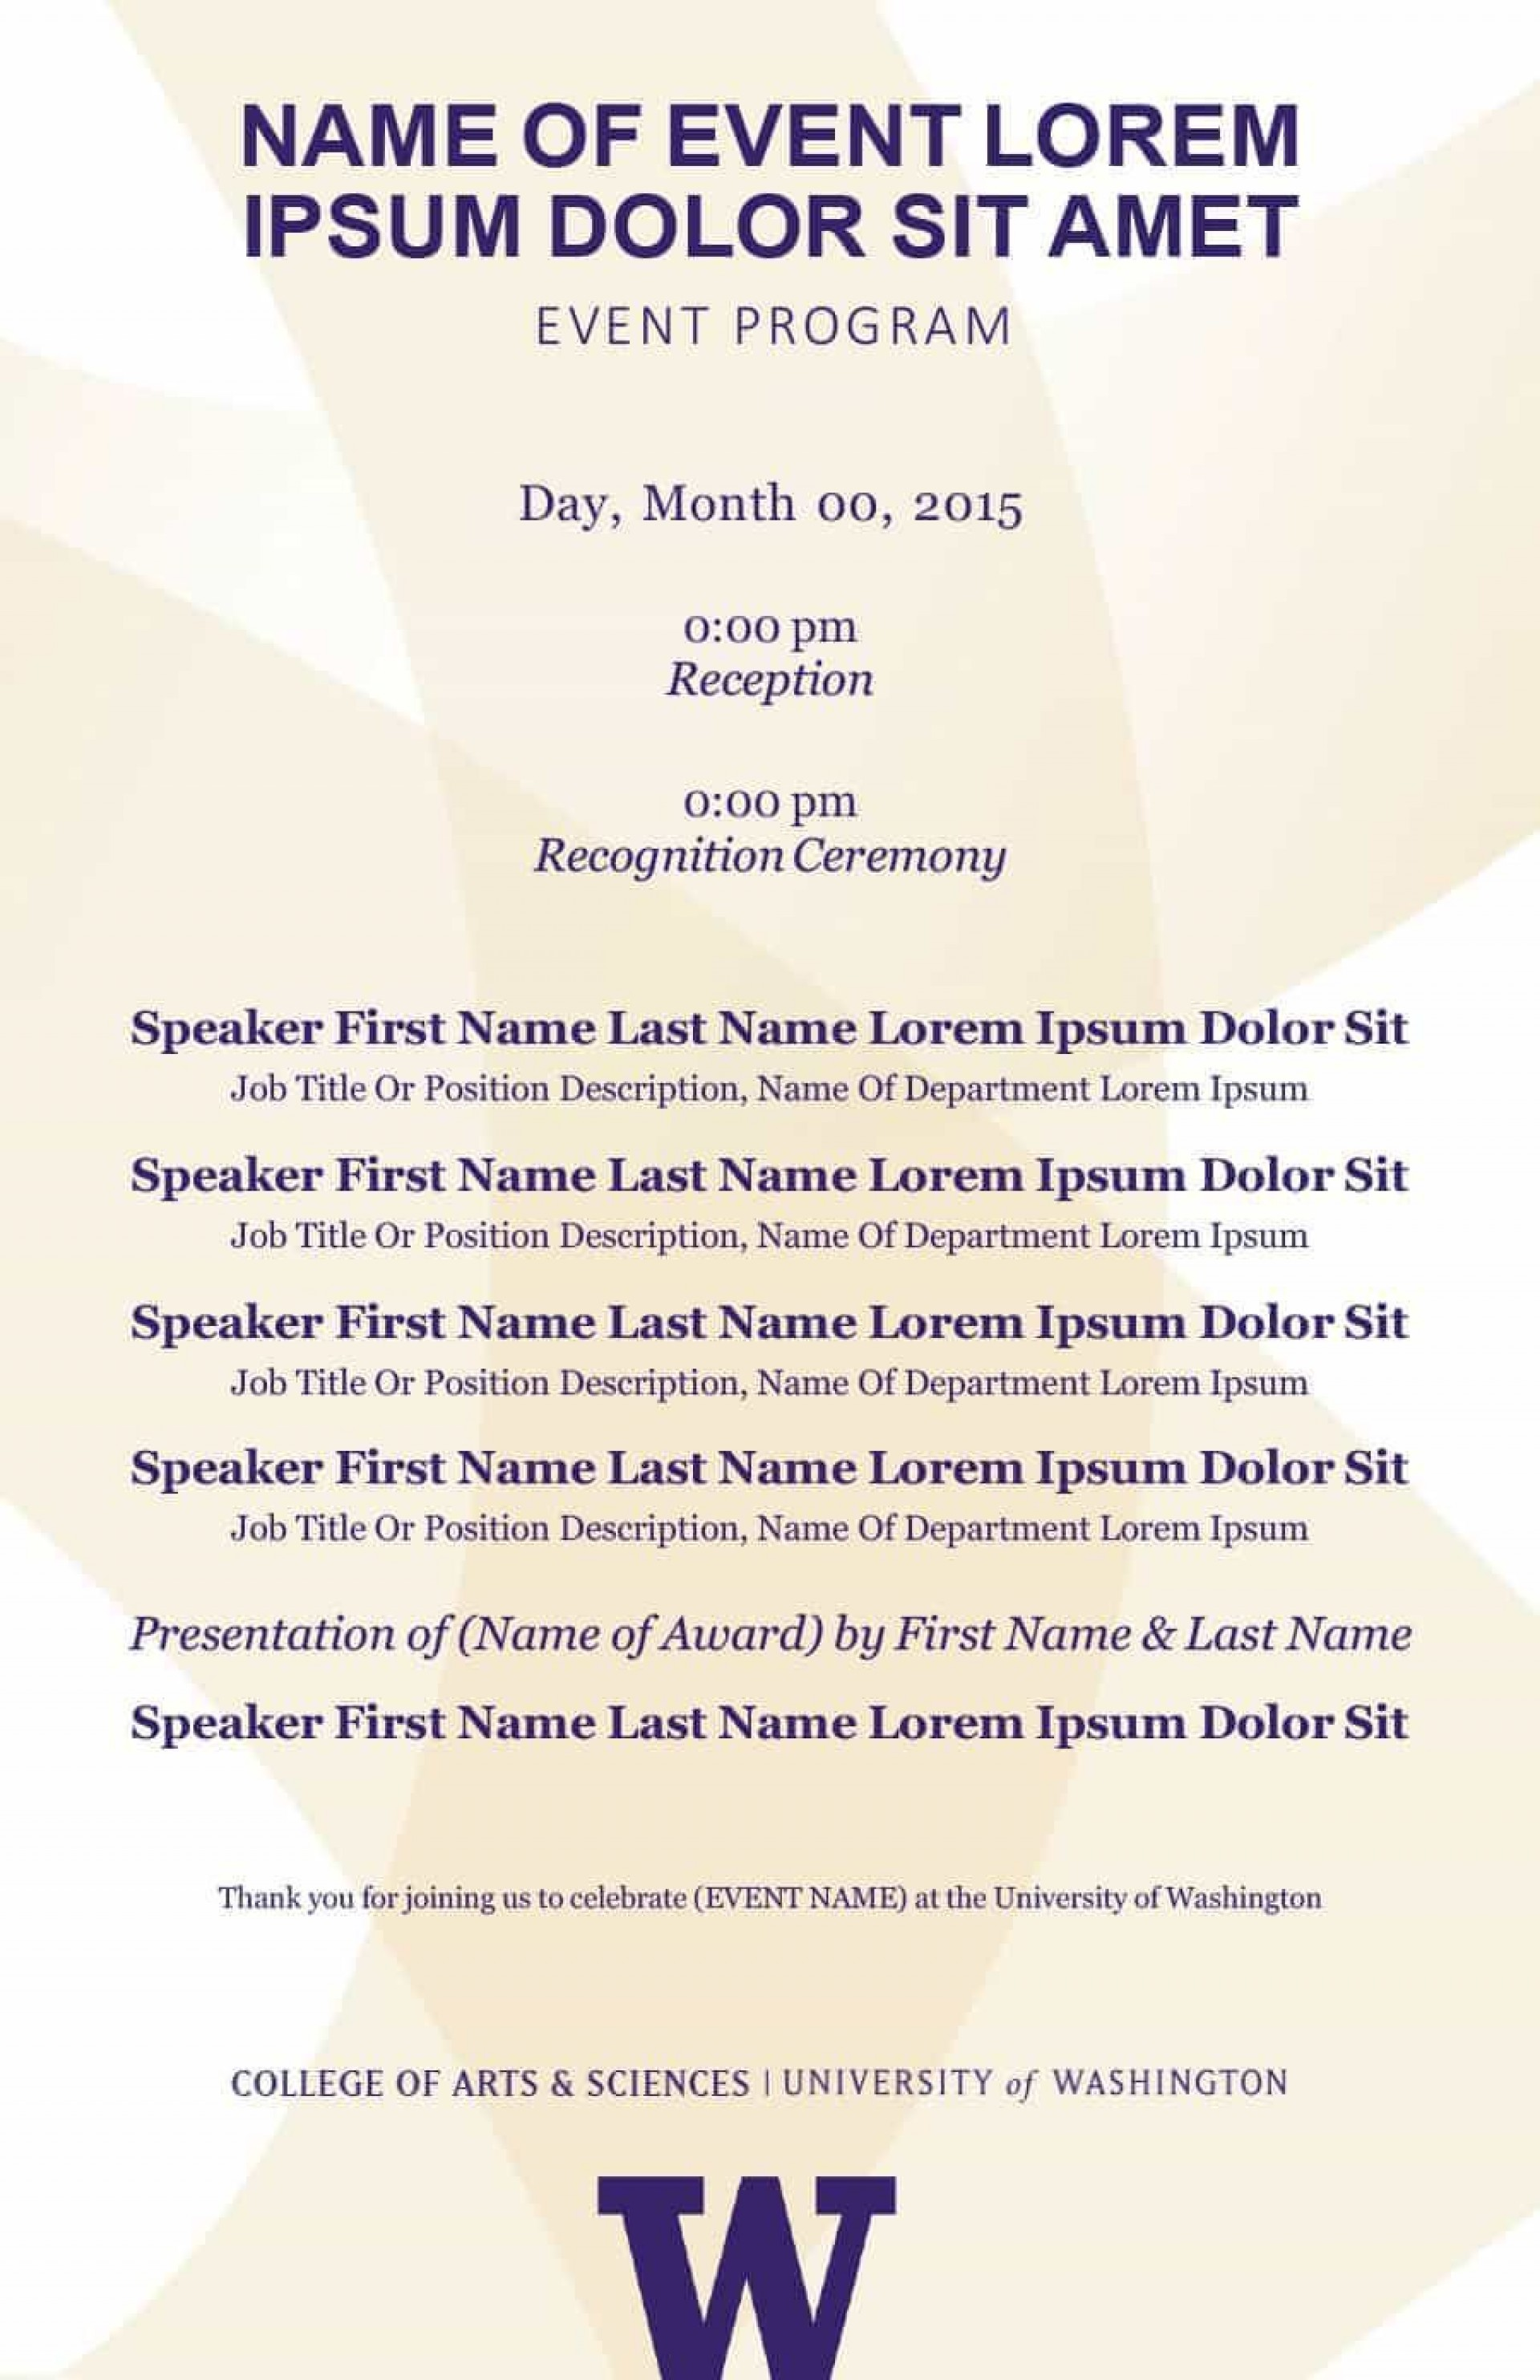 004 Rare Free Event Program Template Picture  Schedule Psd Word1920